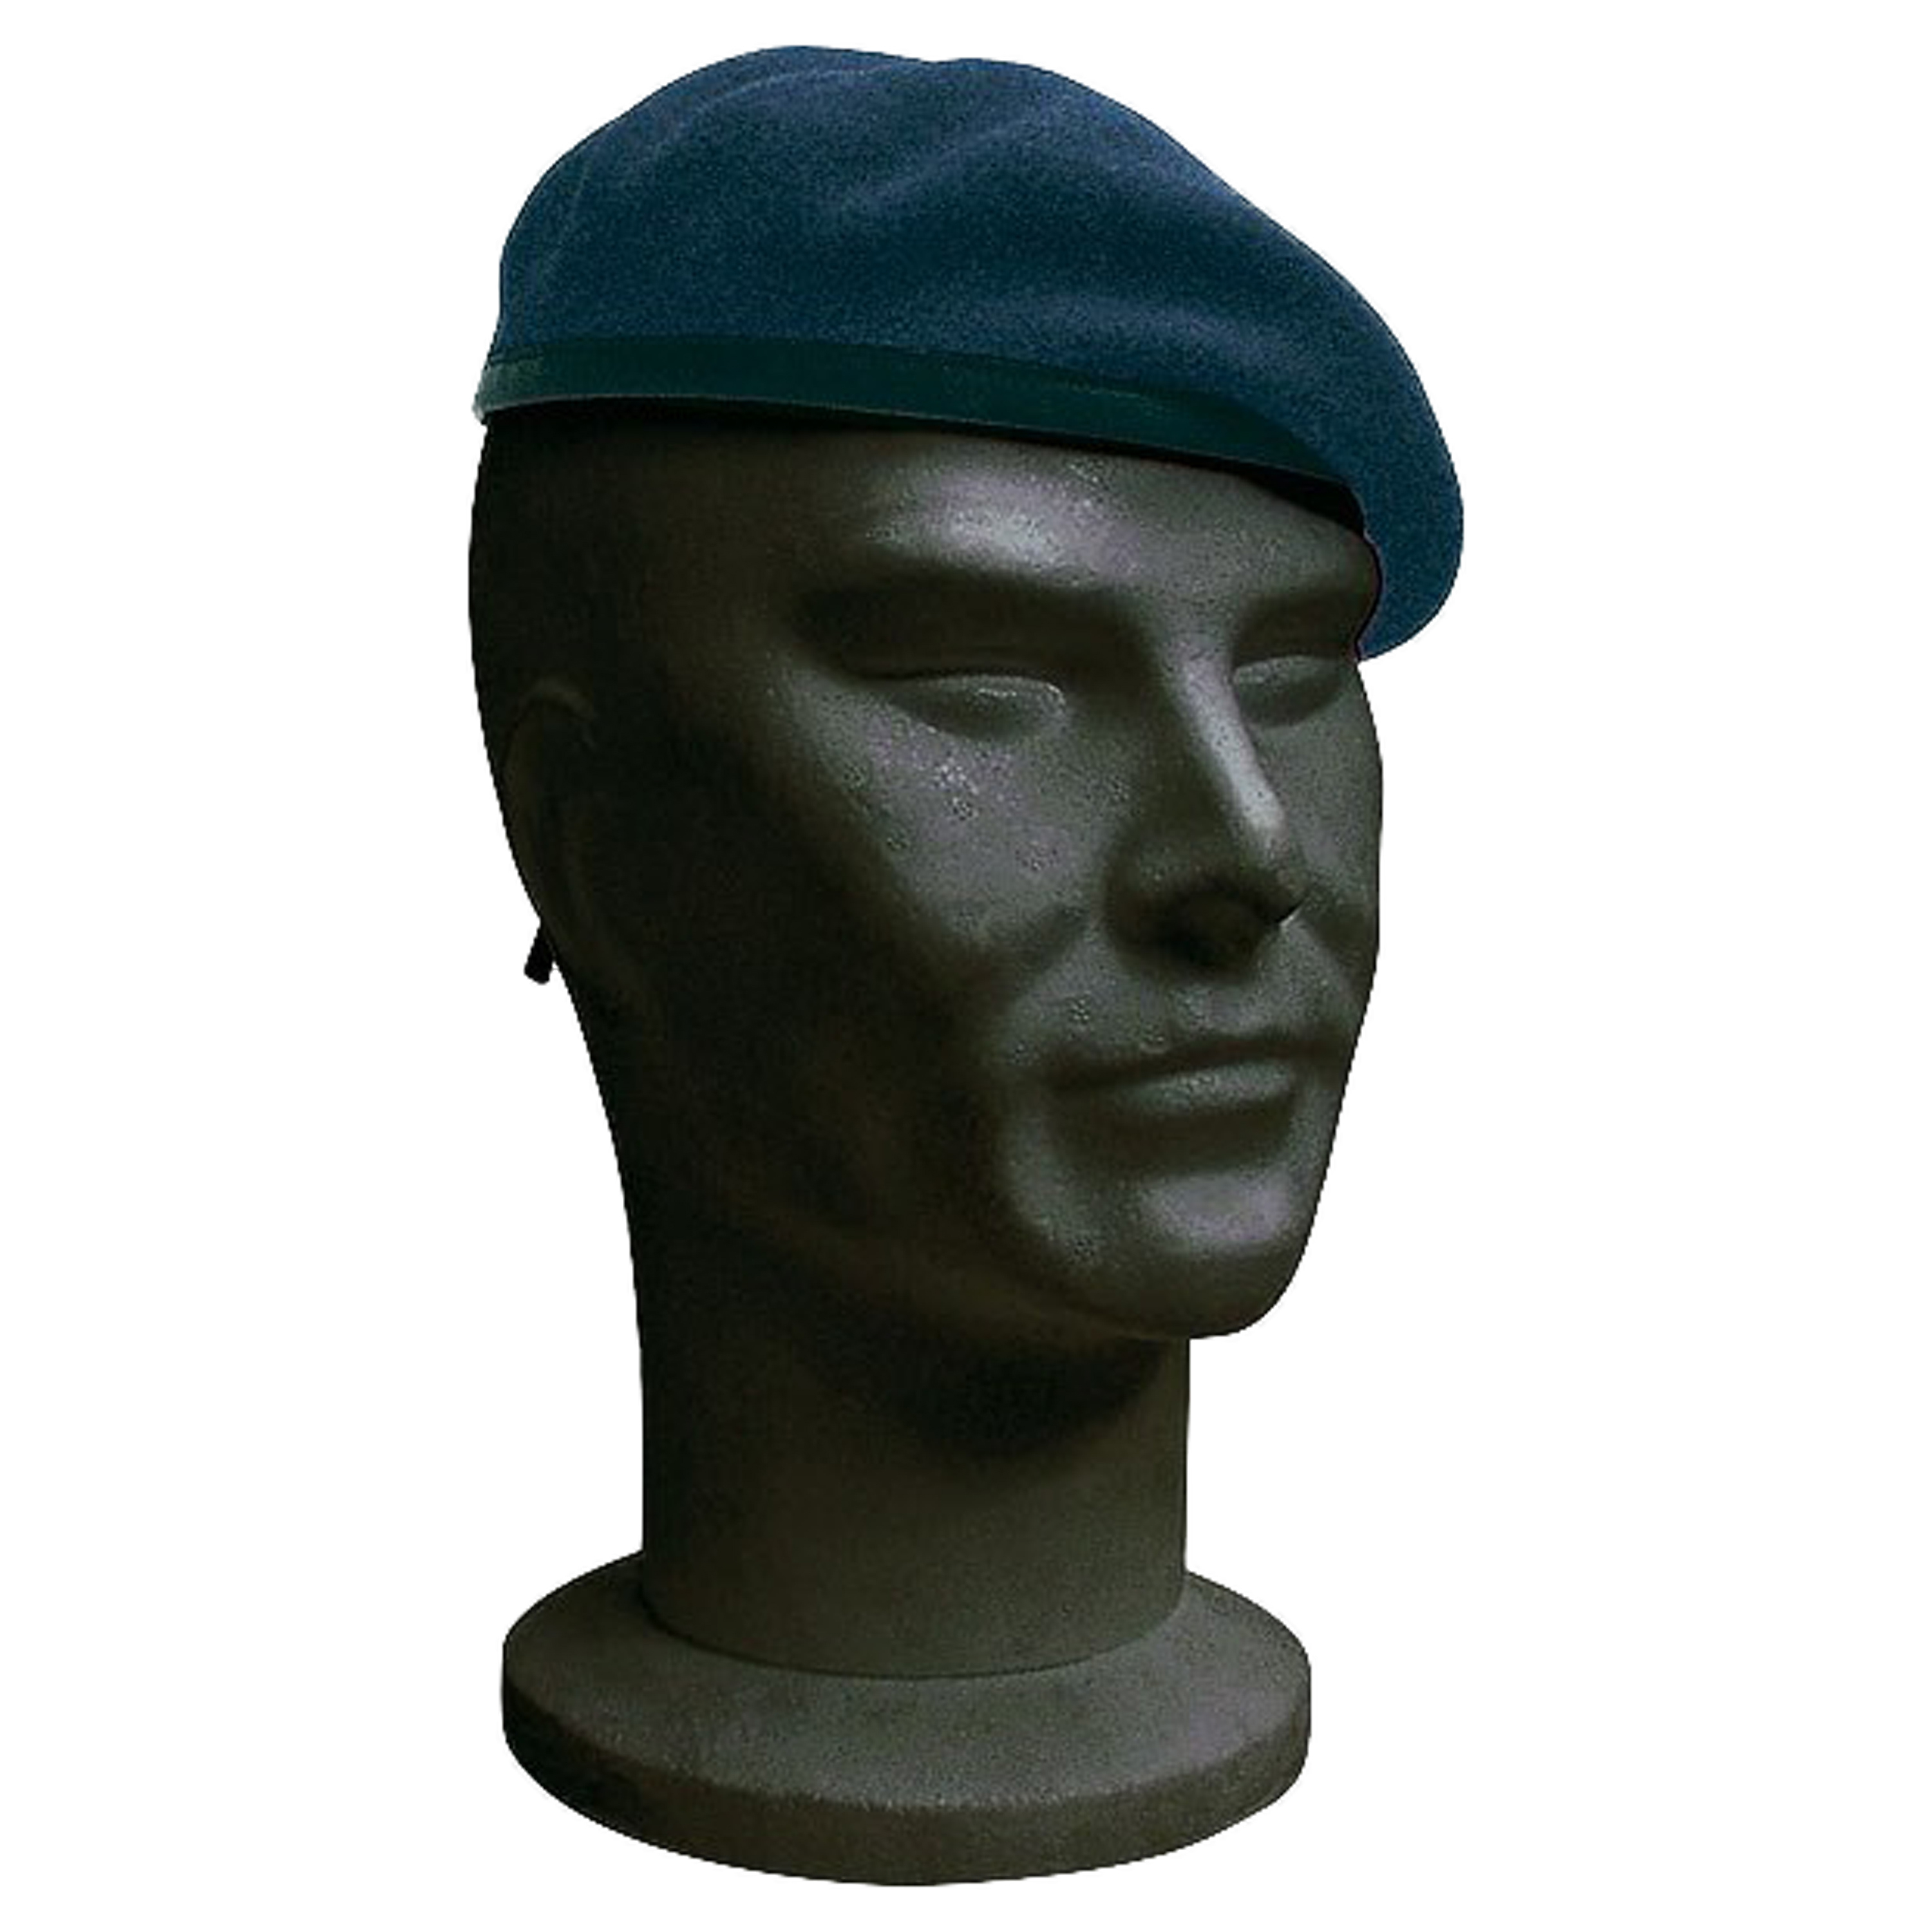 French Beret dark blue